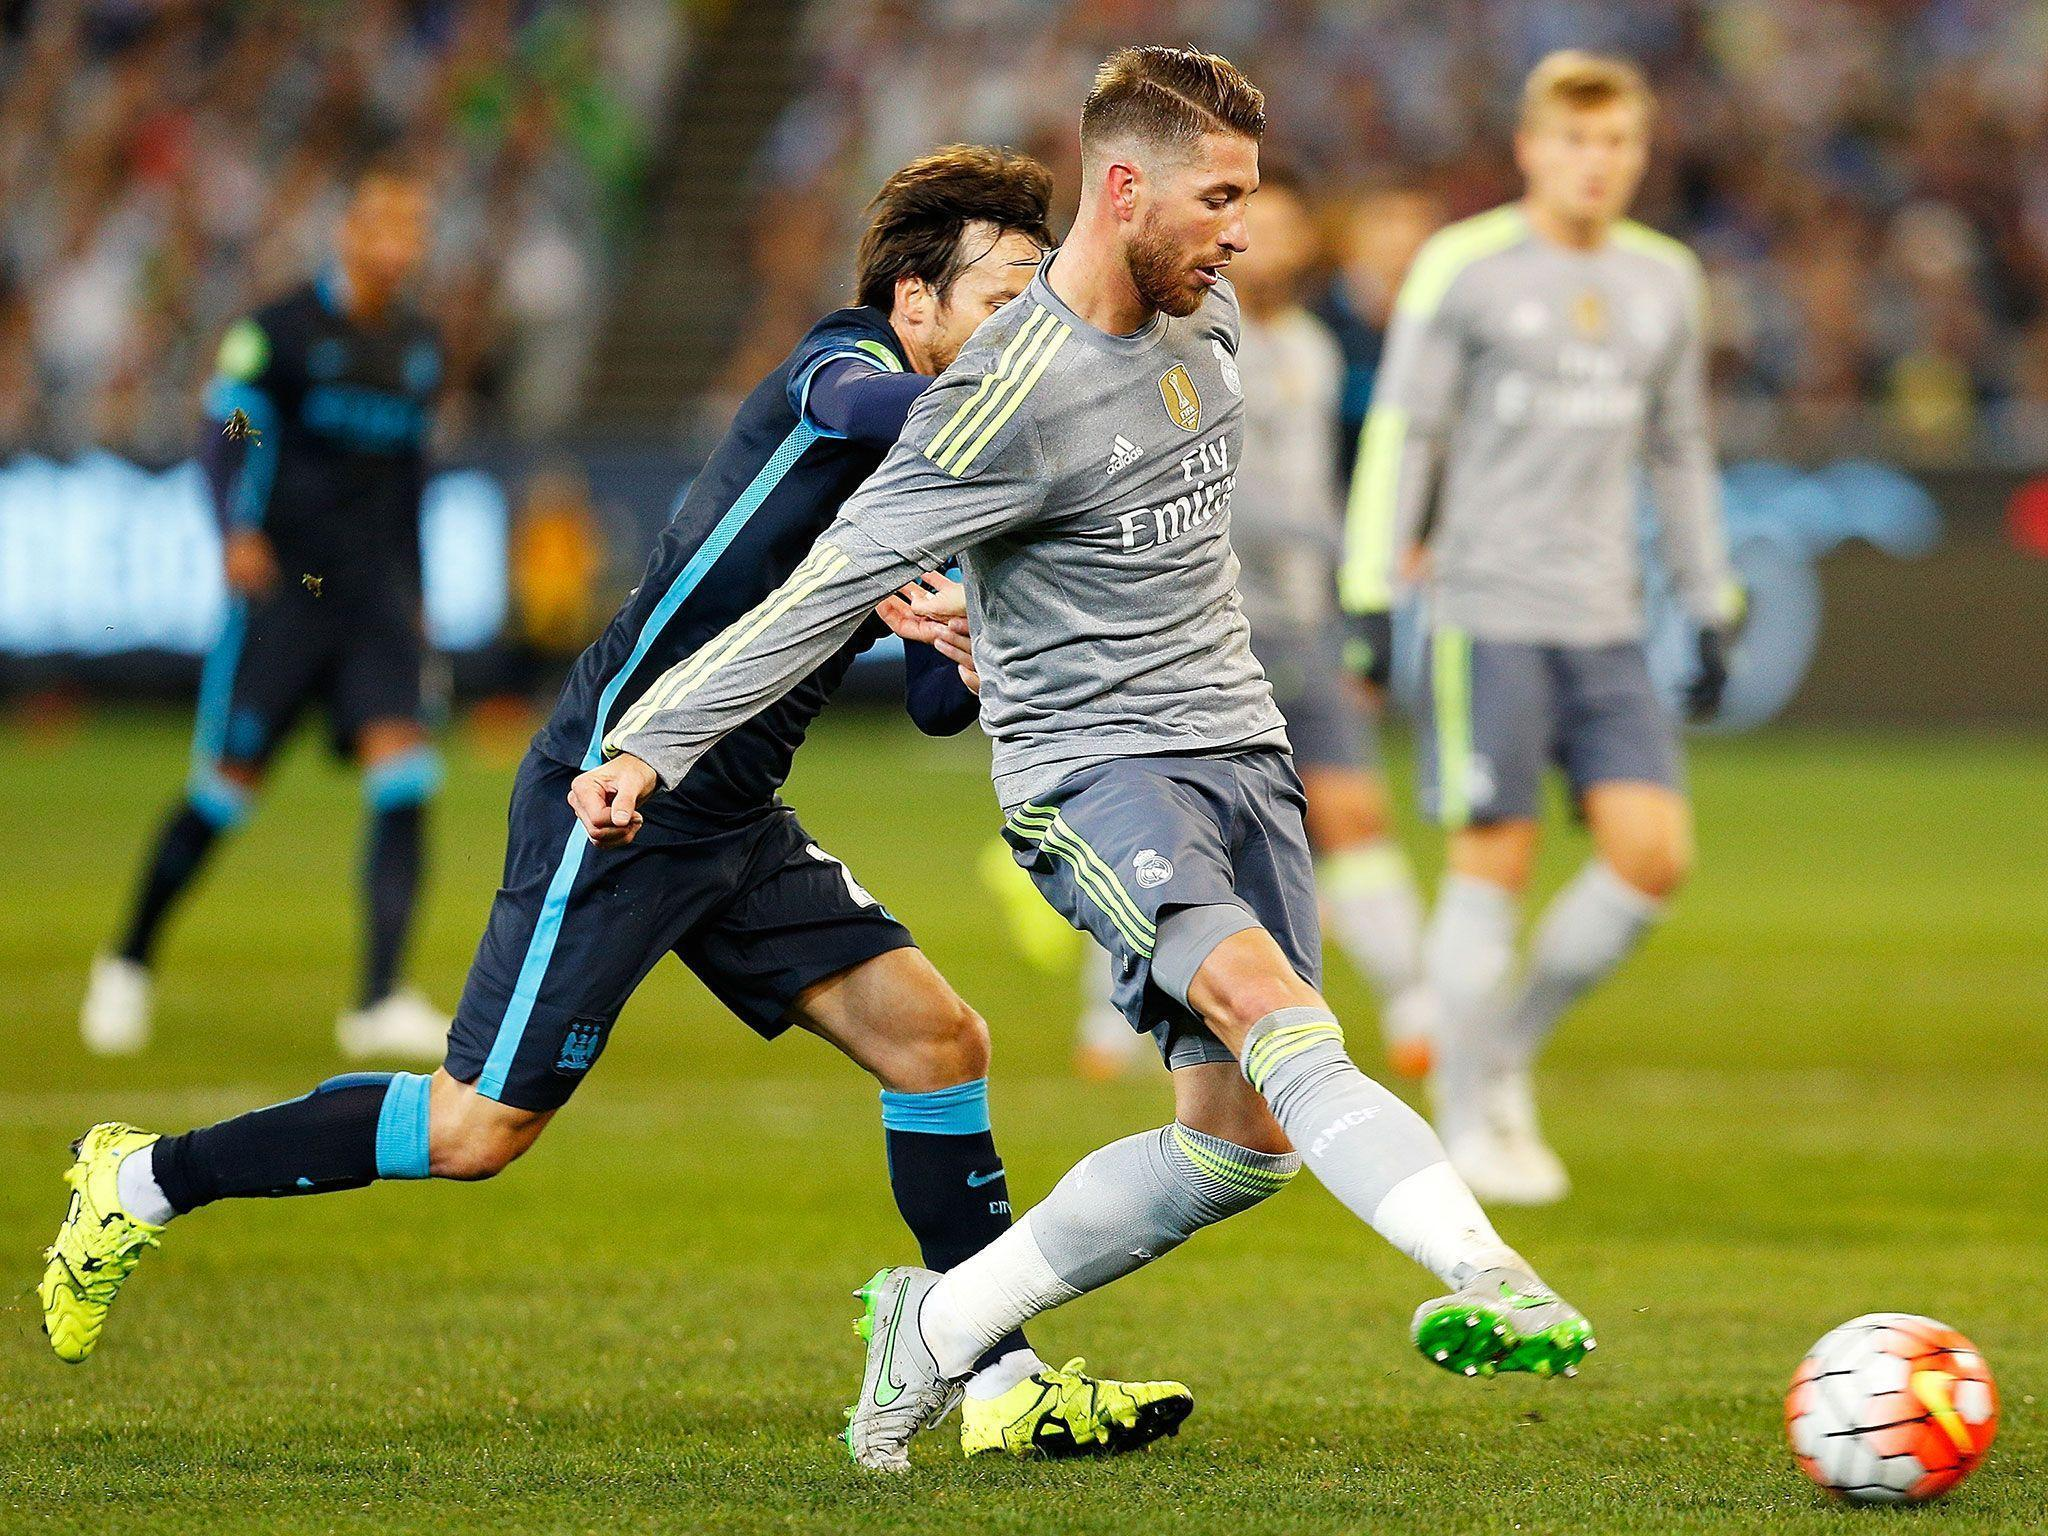 sergio ramos hd images - photo #35